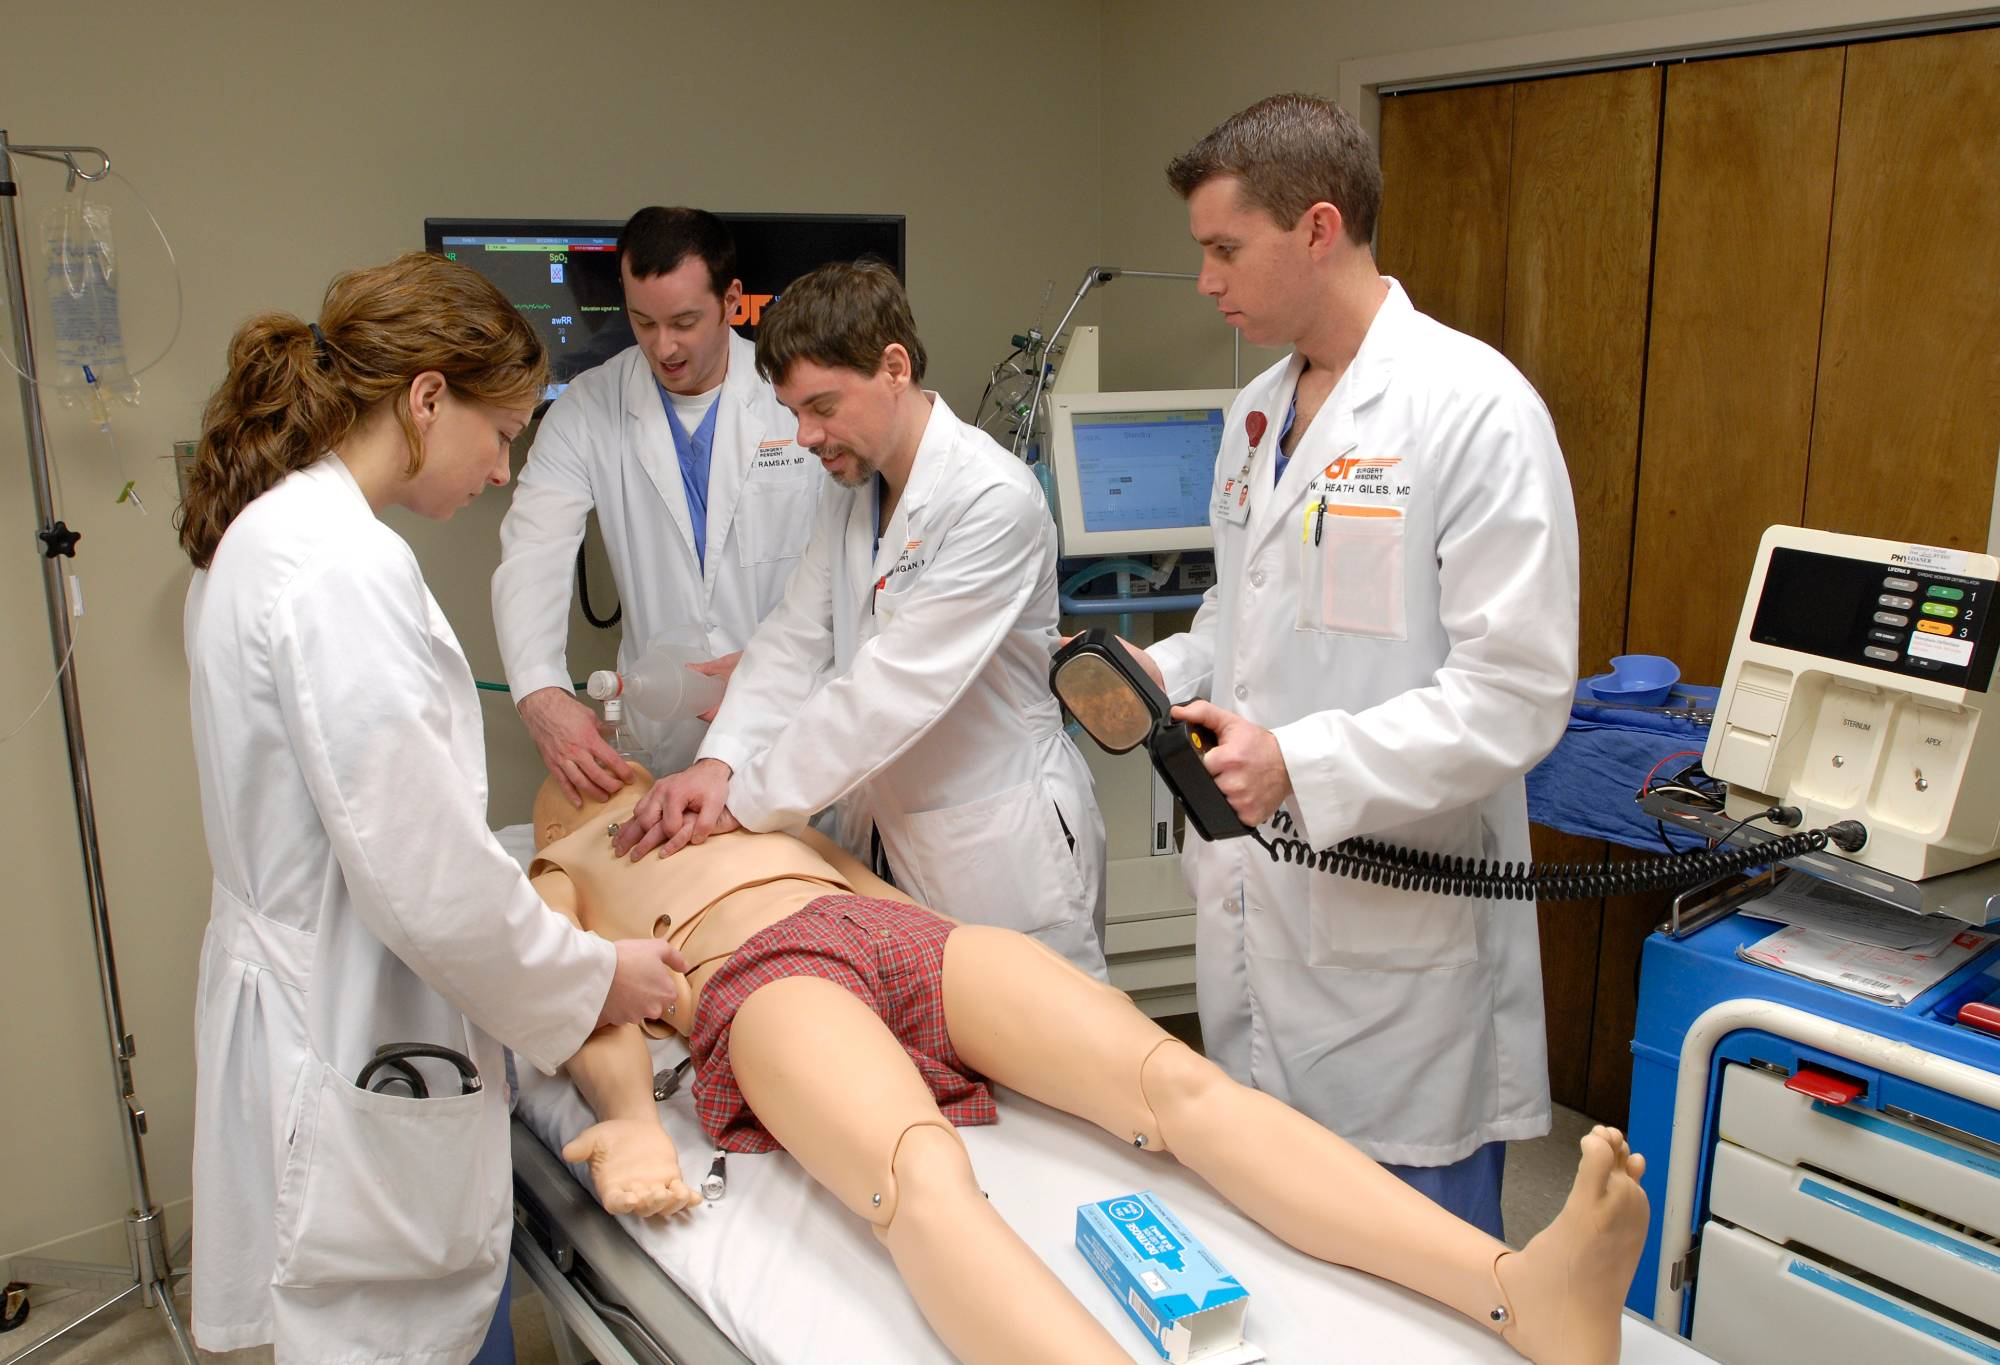 Surgical Simulation Training in the Simulation Center